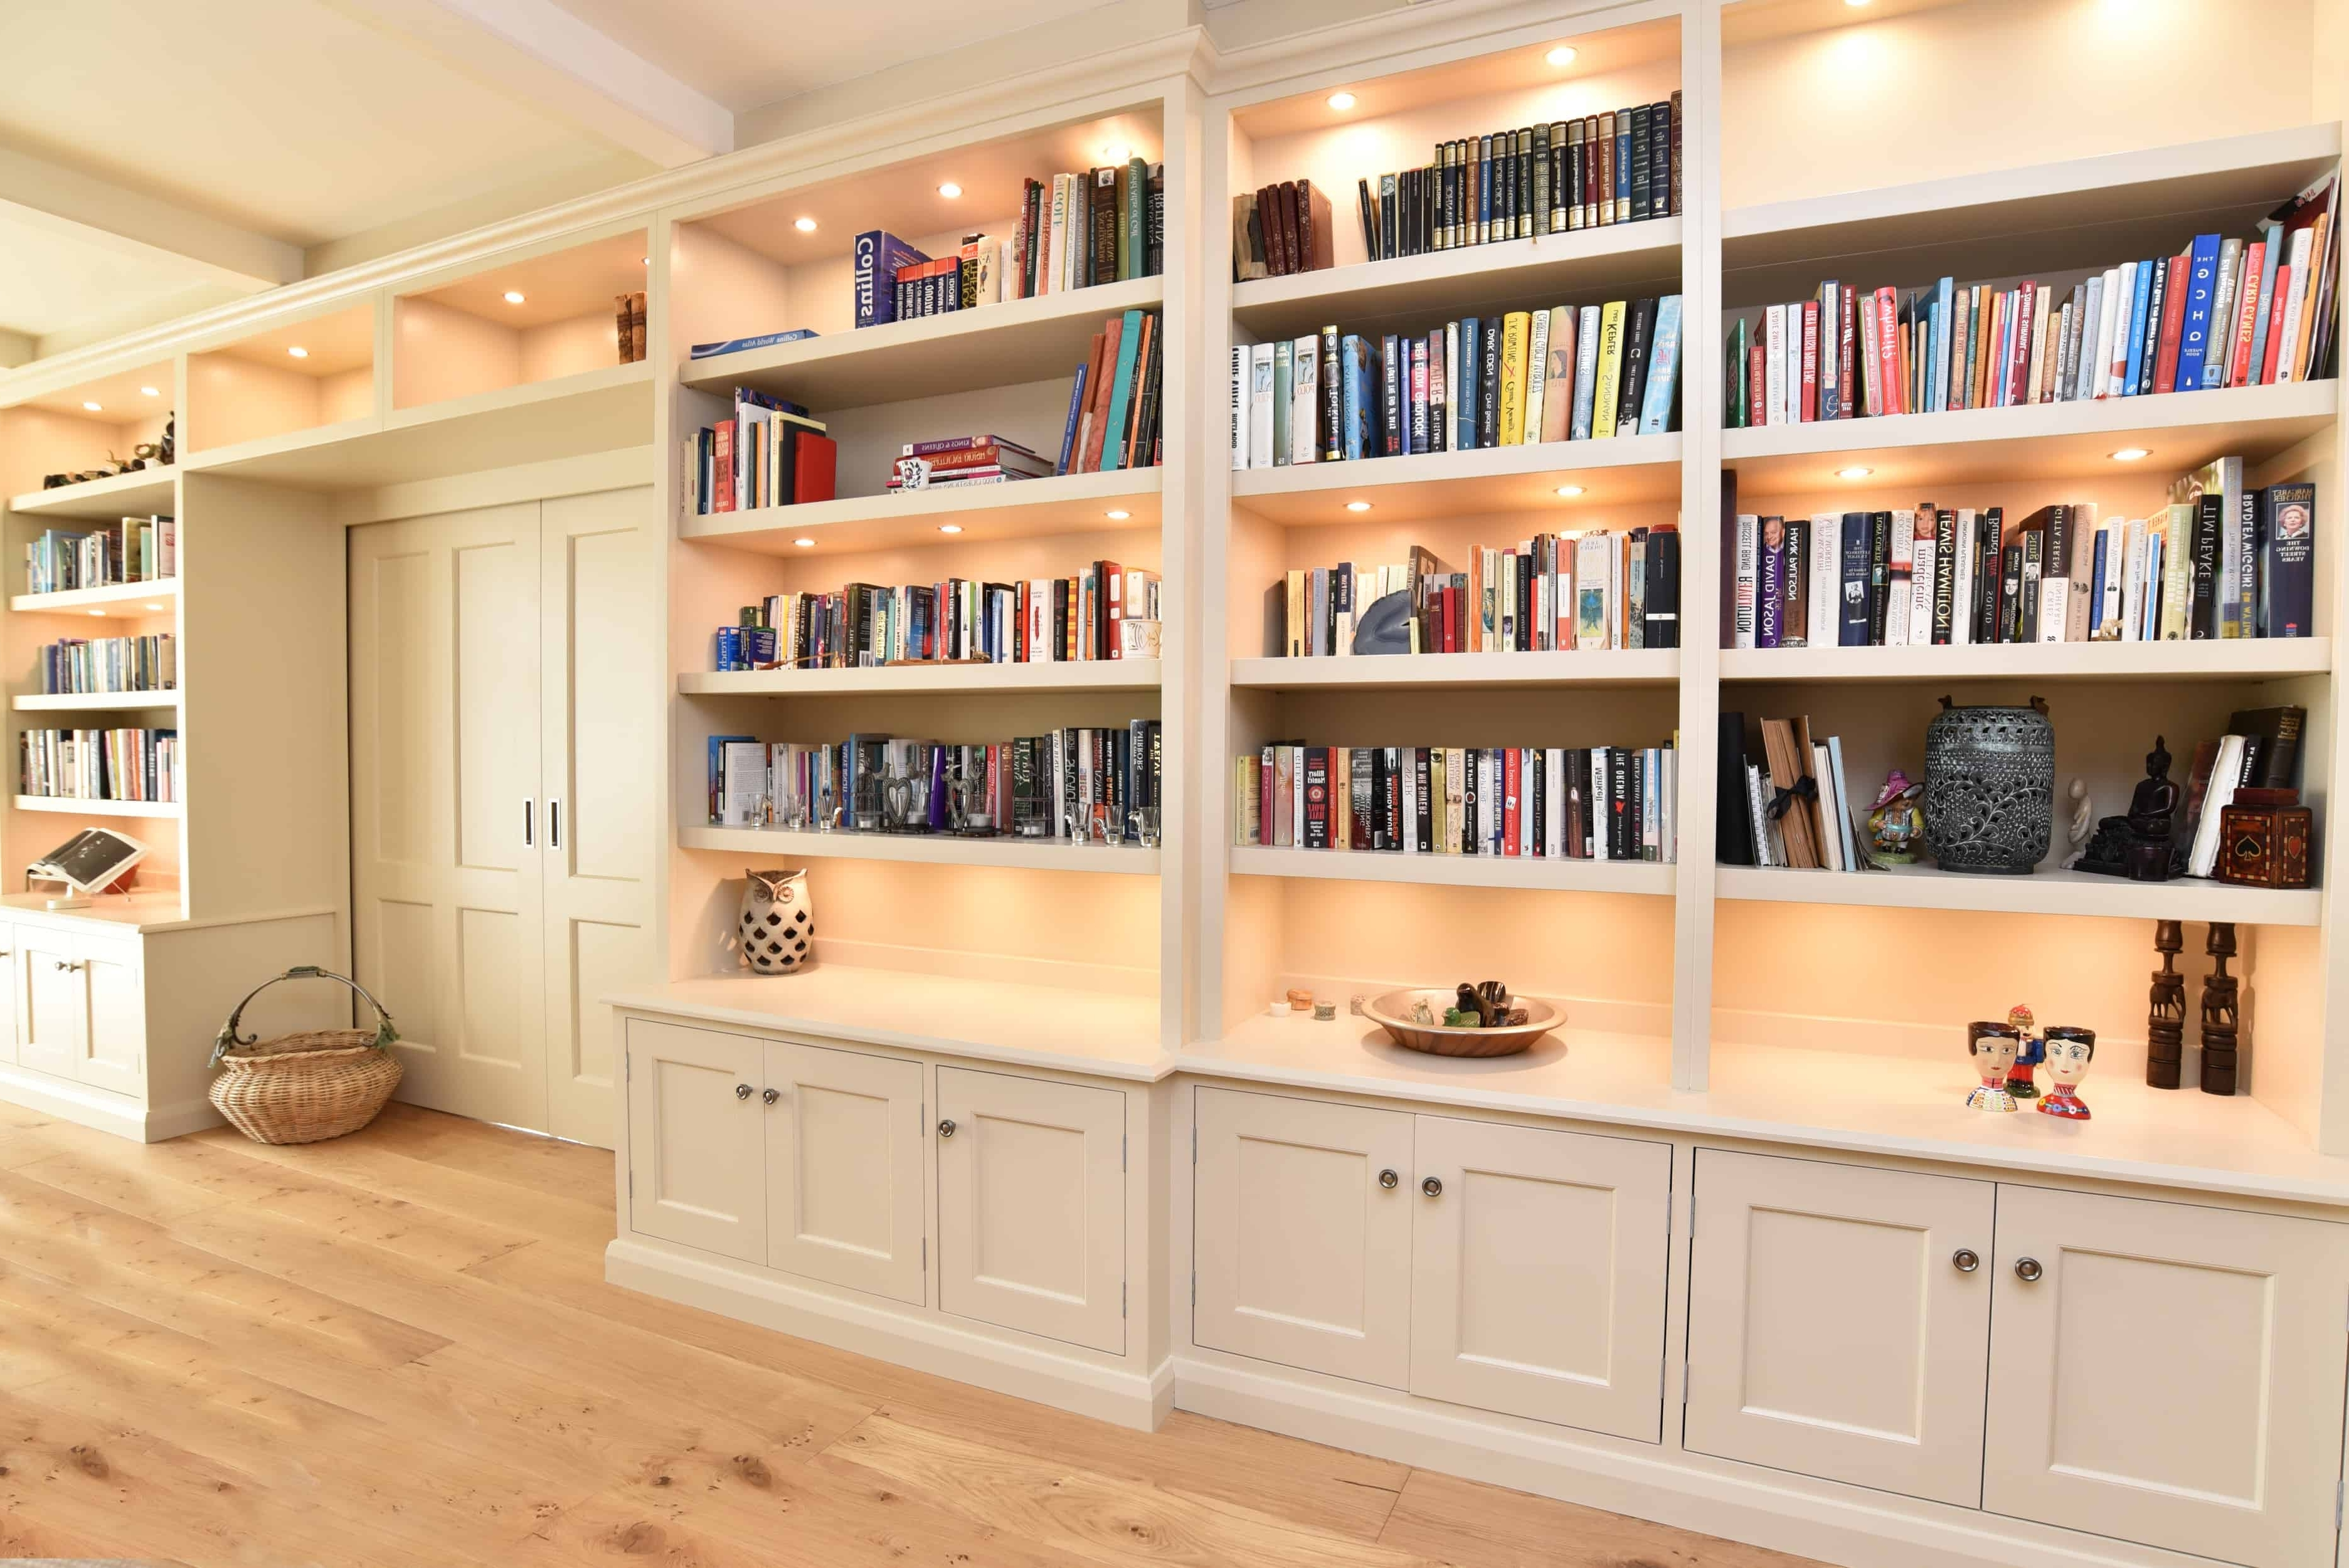 Bespoke Bookcases Intended For 2018 Bespoke Bookcases Harrogate (View 4 of 15)